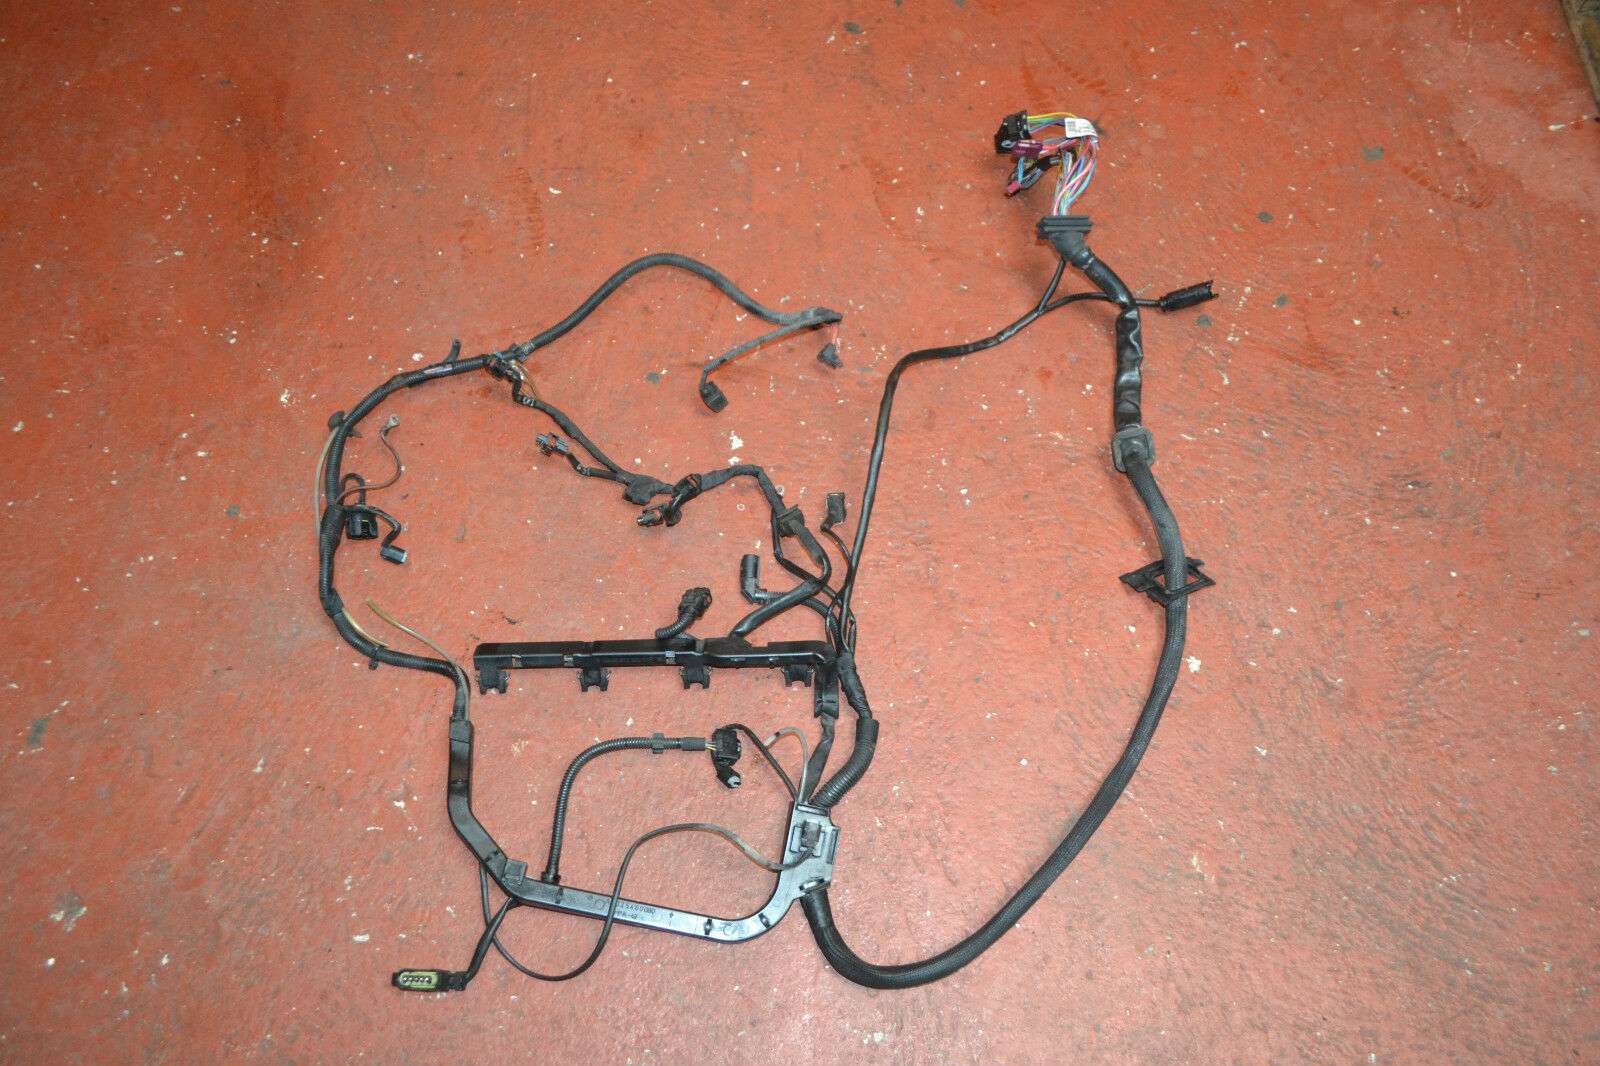 Mercedes C Class W203 C200 Engine Harness Wiring Loom A2035460080 Issues A2035401905 1 Of 6only Available